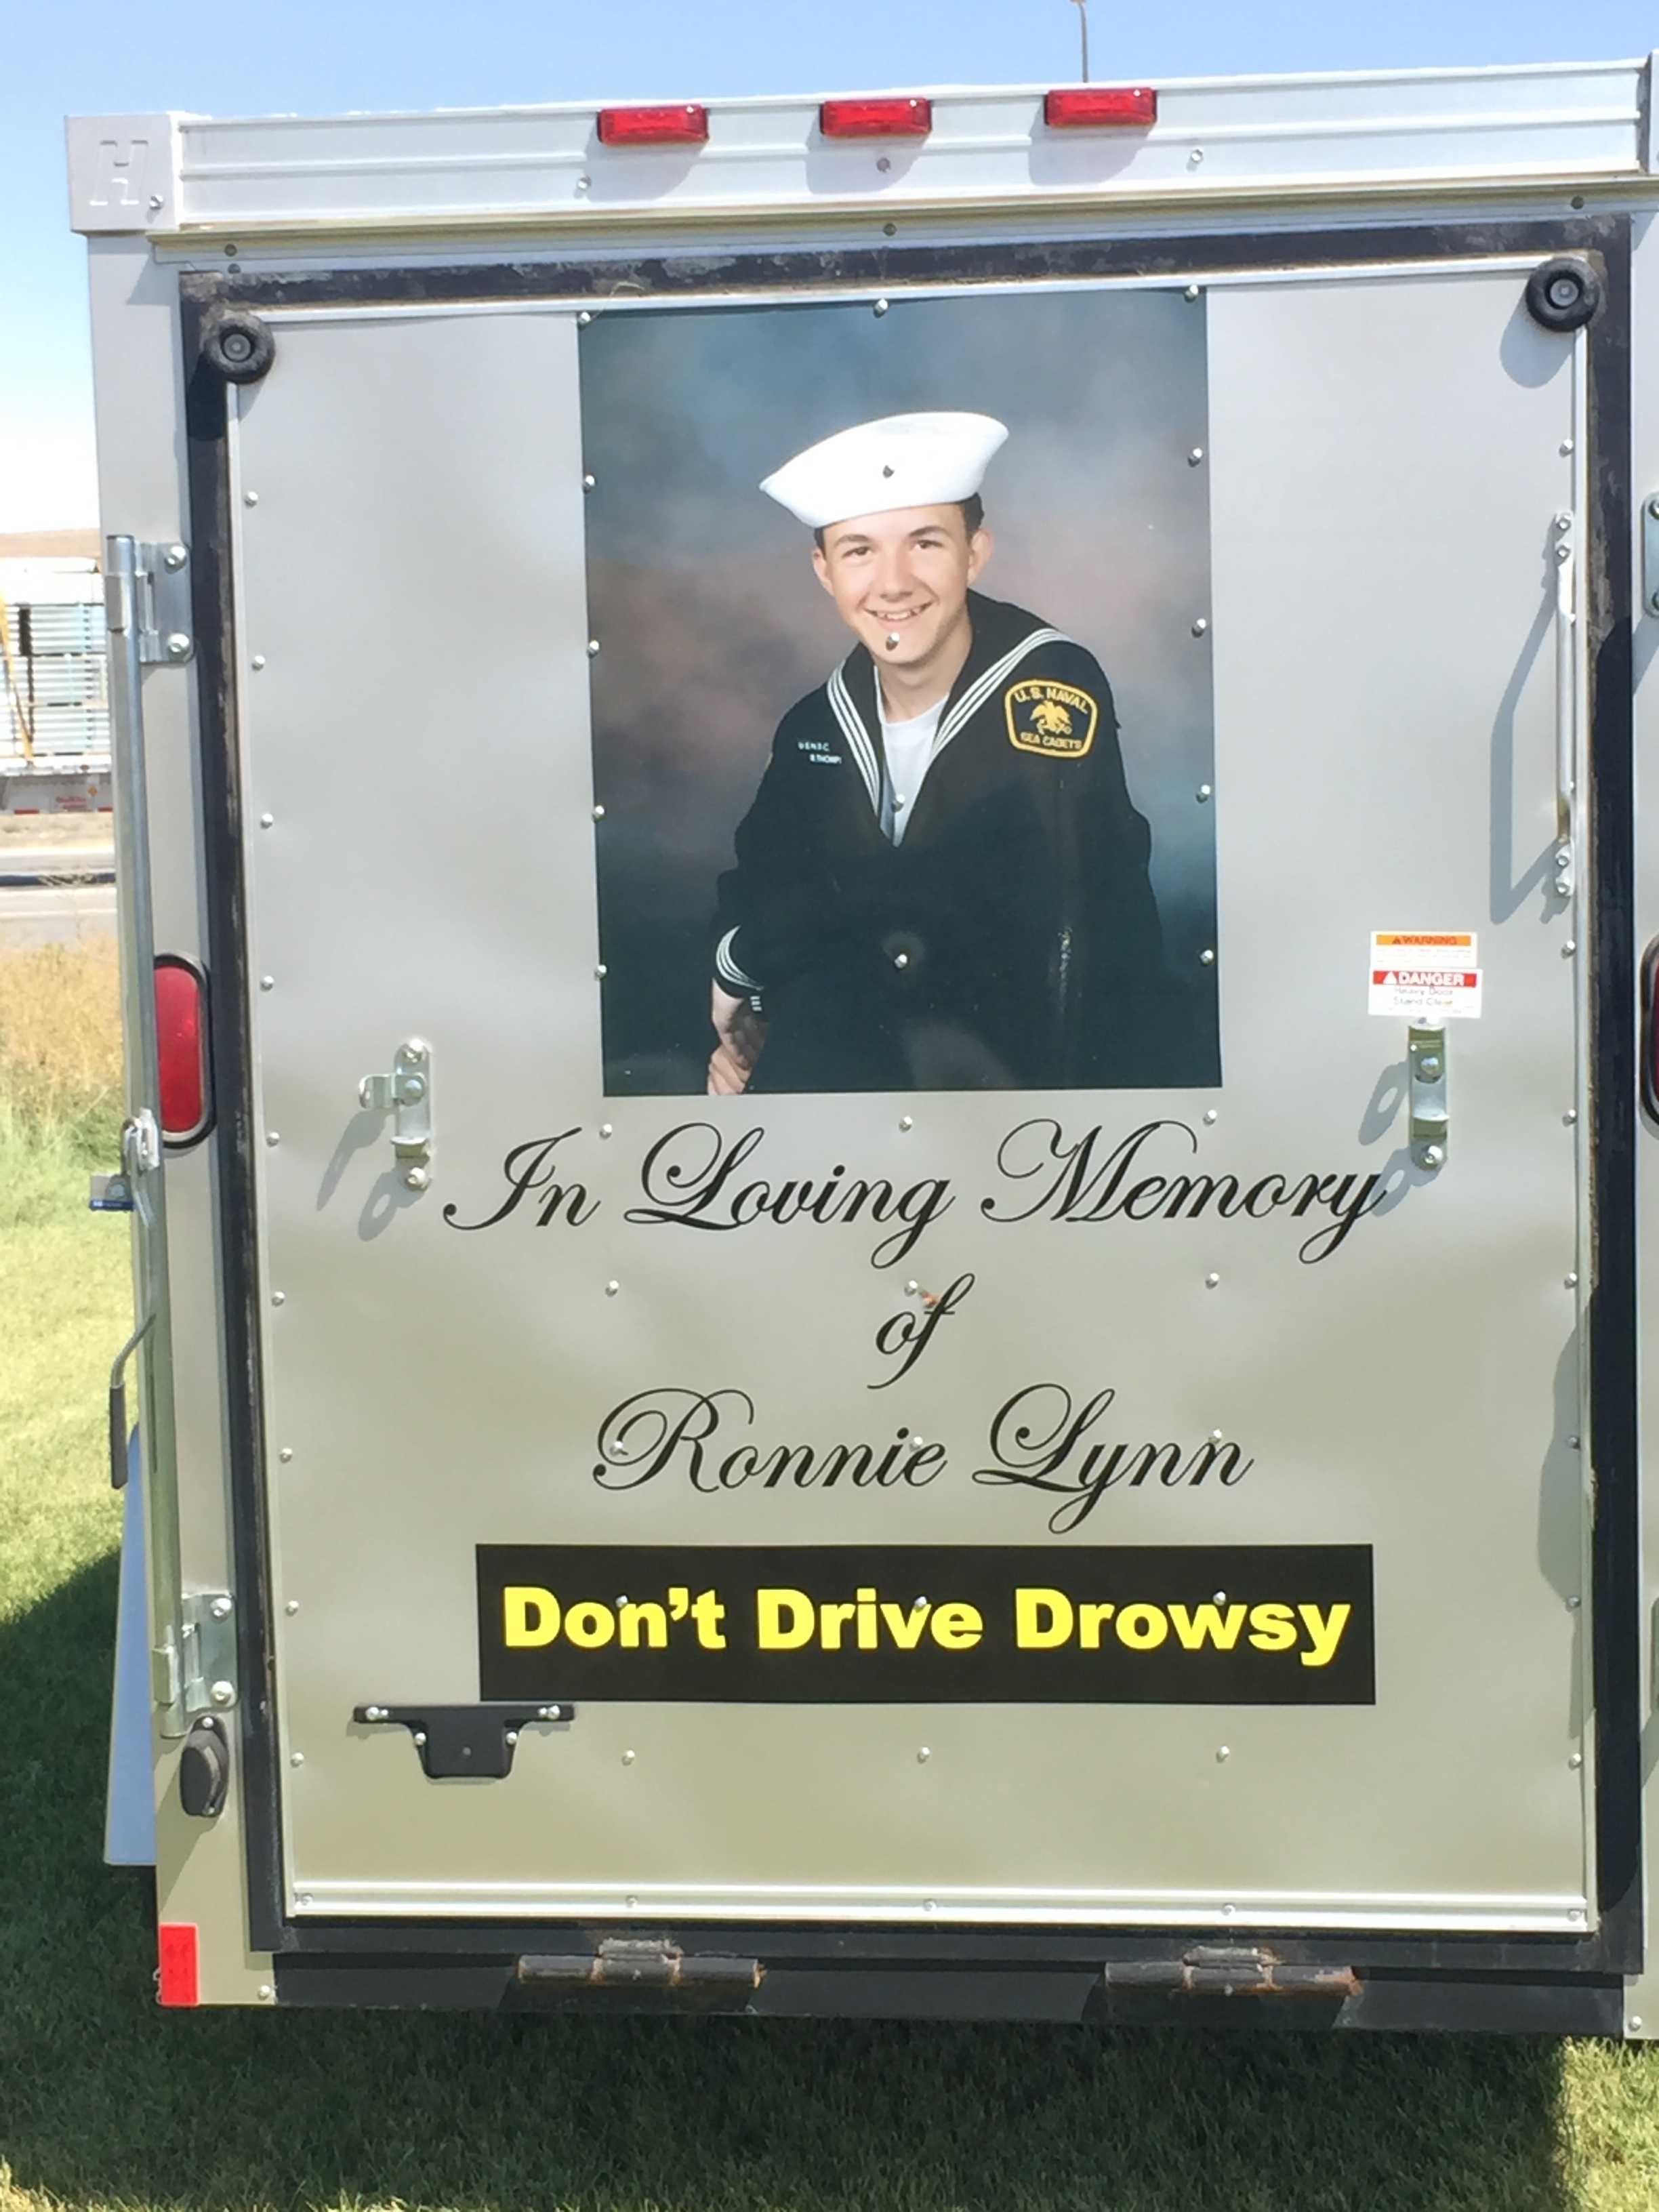 Trailer from NODD with picture of Ronnie Lynn who was killed in a drowsy driving crash